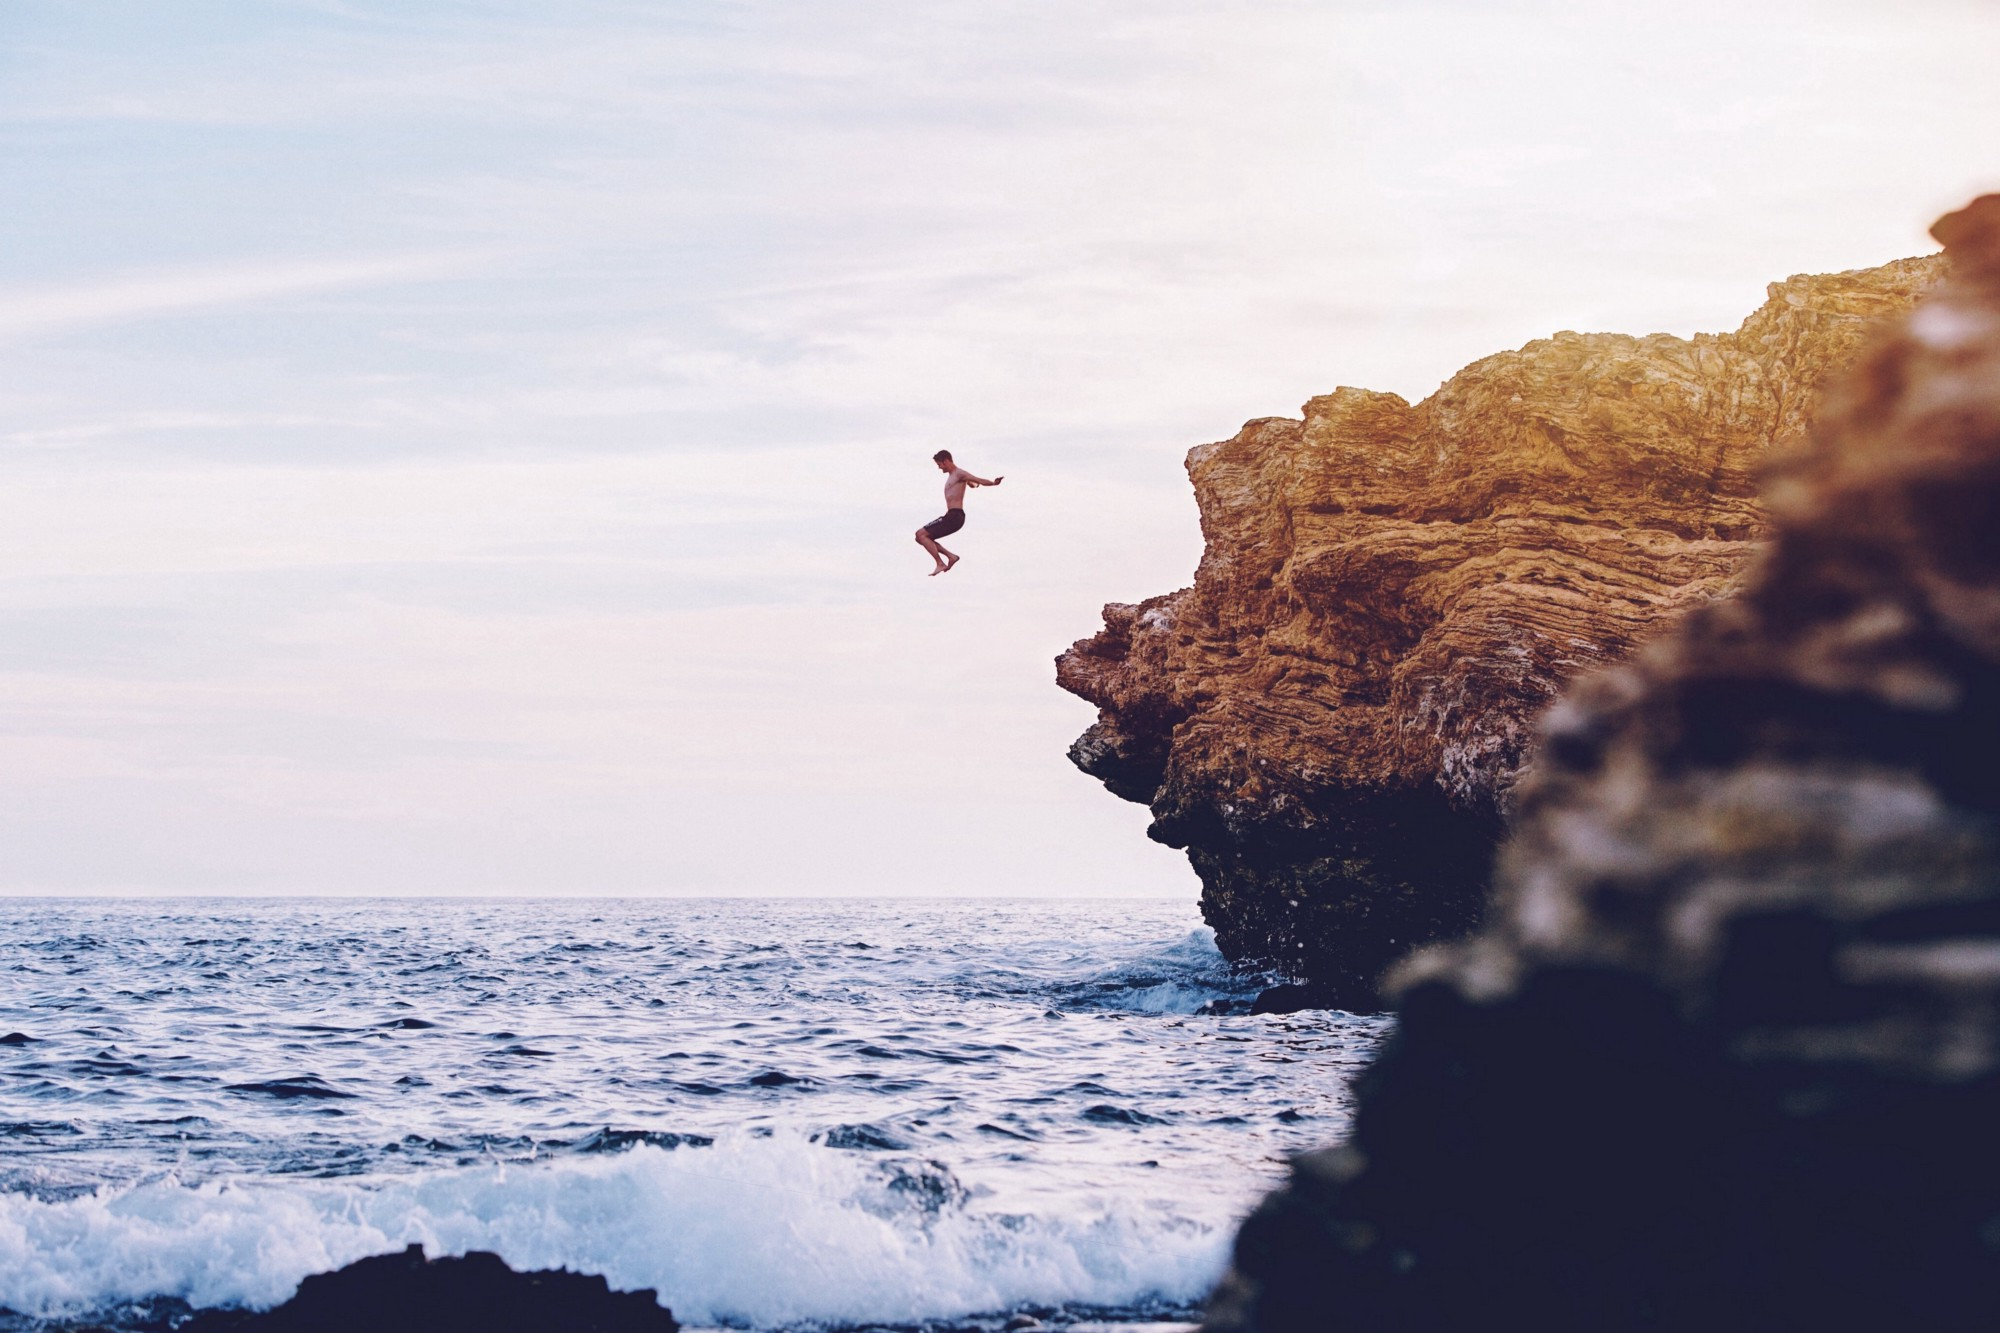 a brave man jumps from a tall cliff into the ocean